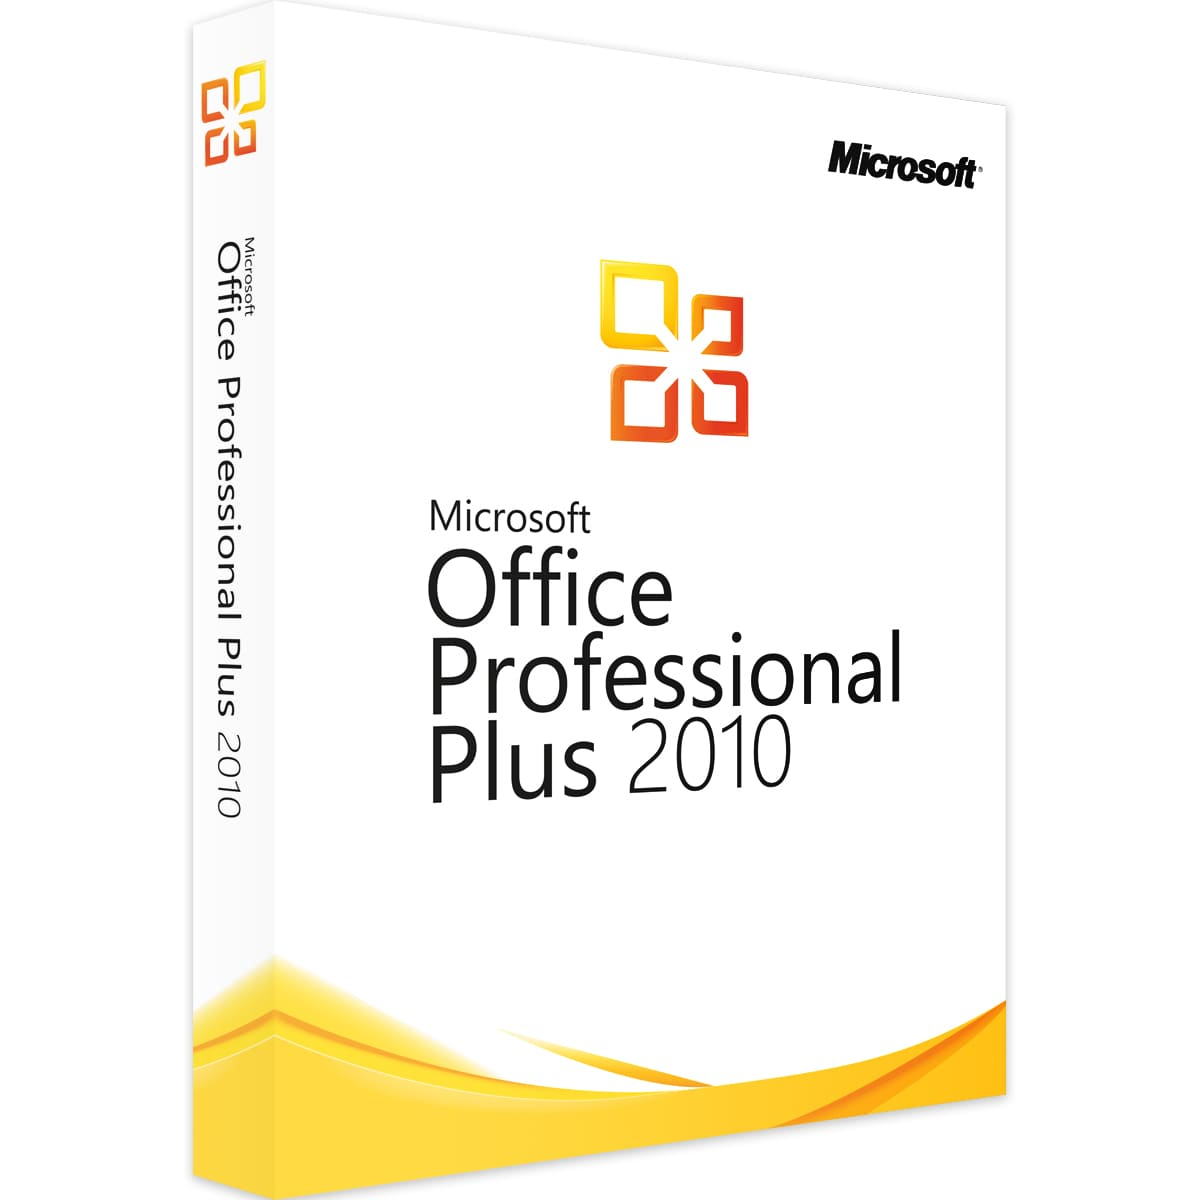 office-professional-plus-2010-min